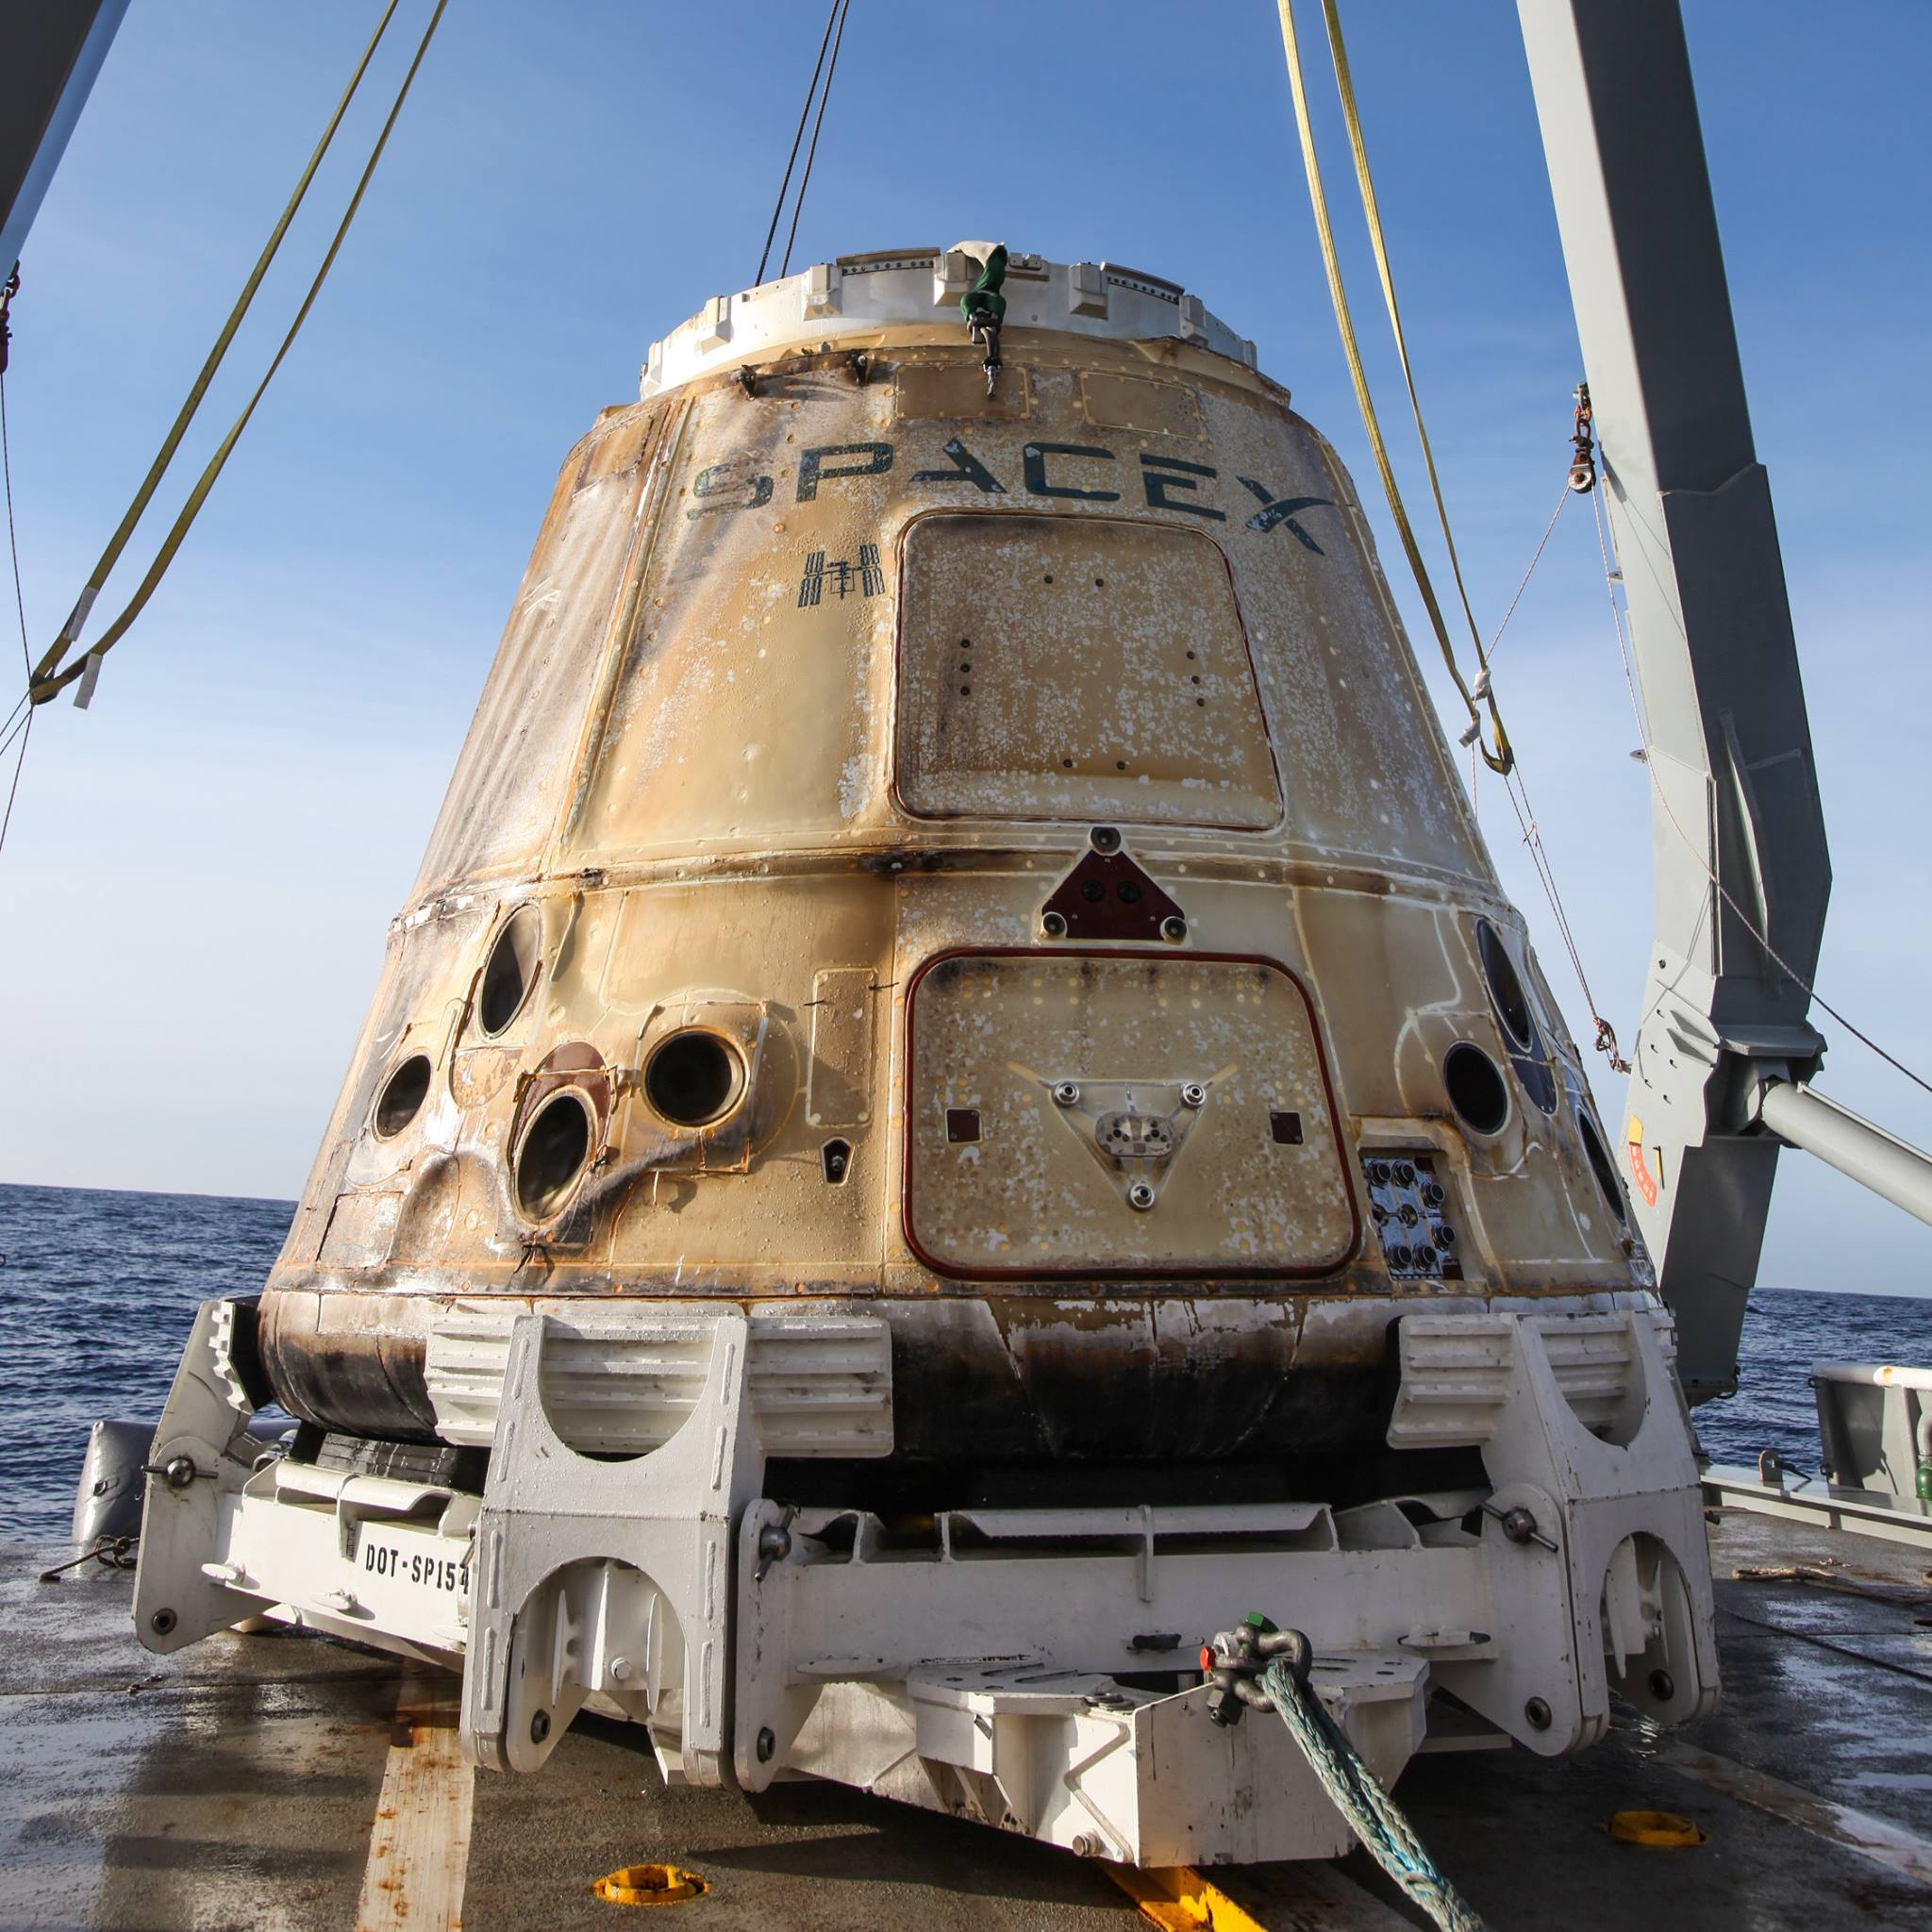 CRS13 – C108 recovery #2 (SpaceX)